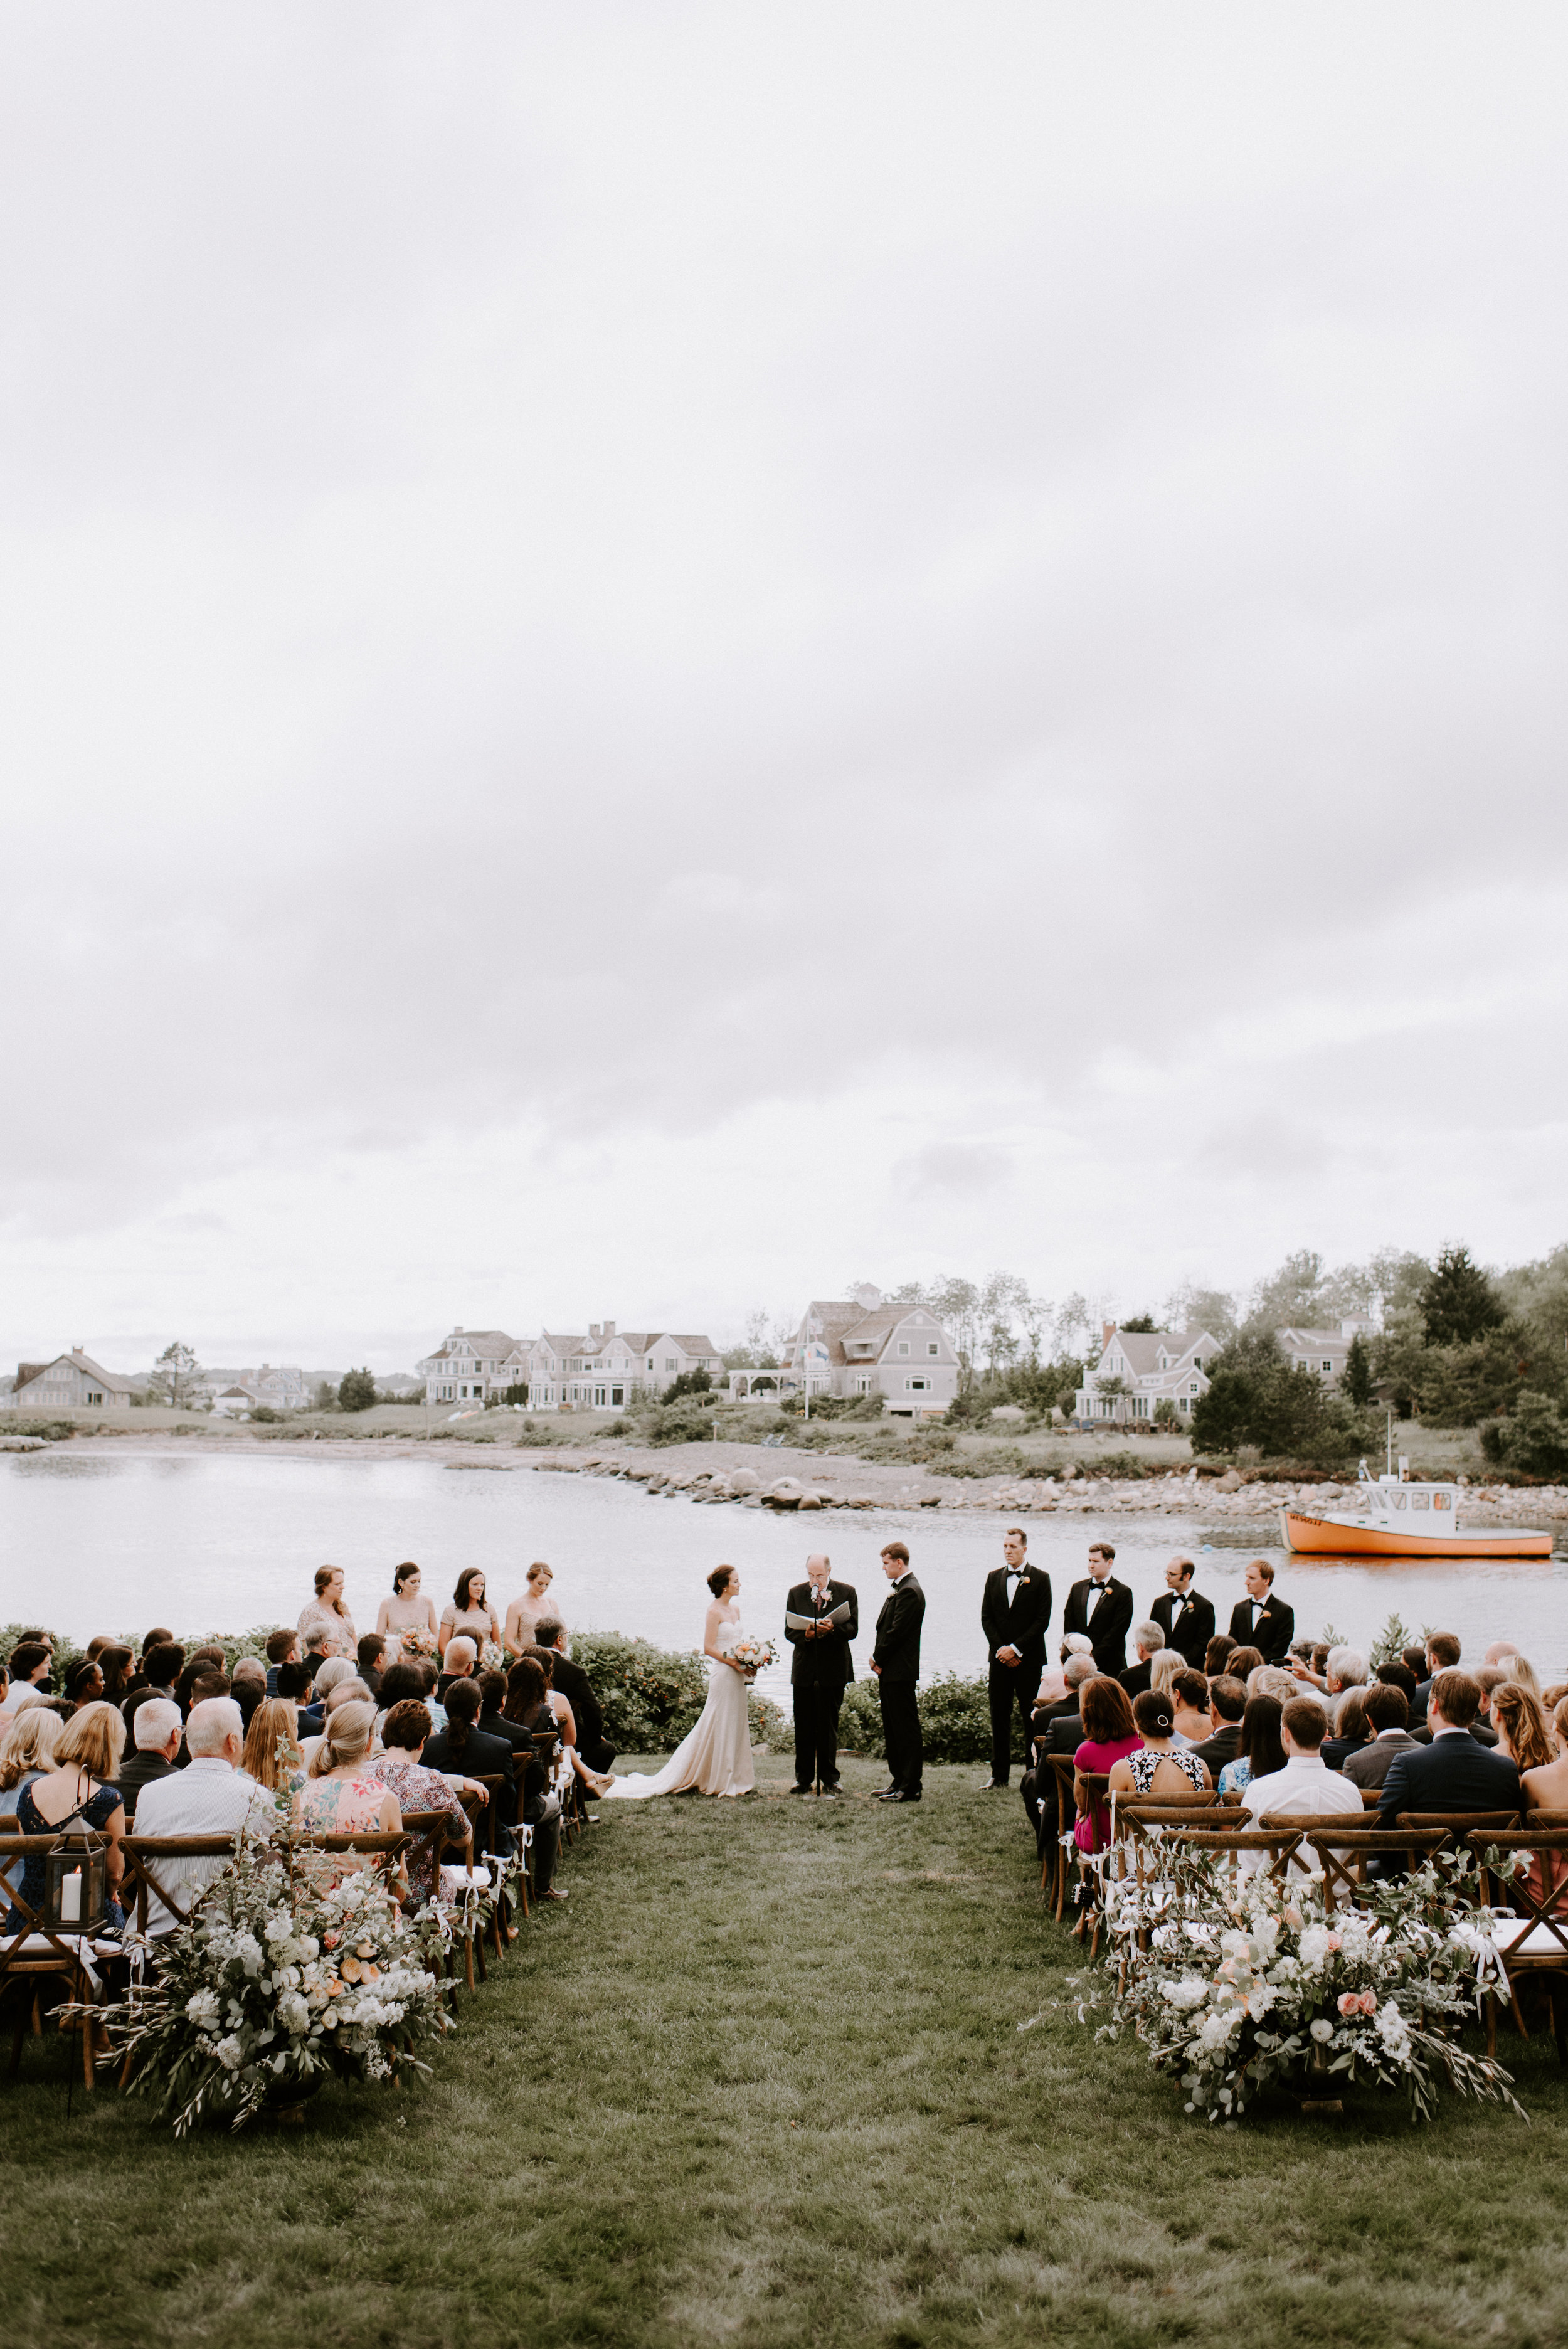 Nothing beats an ocean backdrop and the sophistication of black tuxedos.